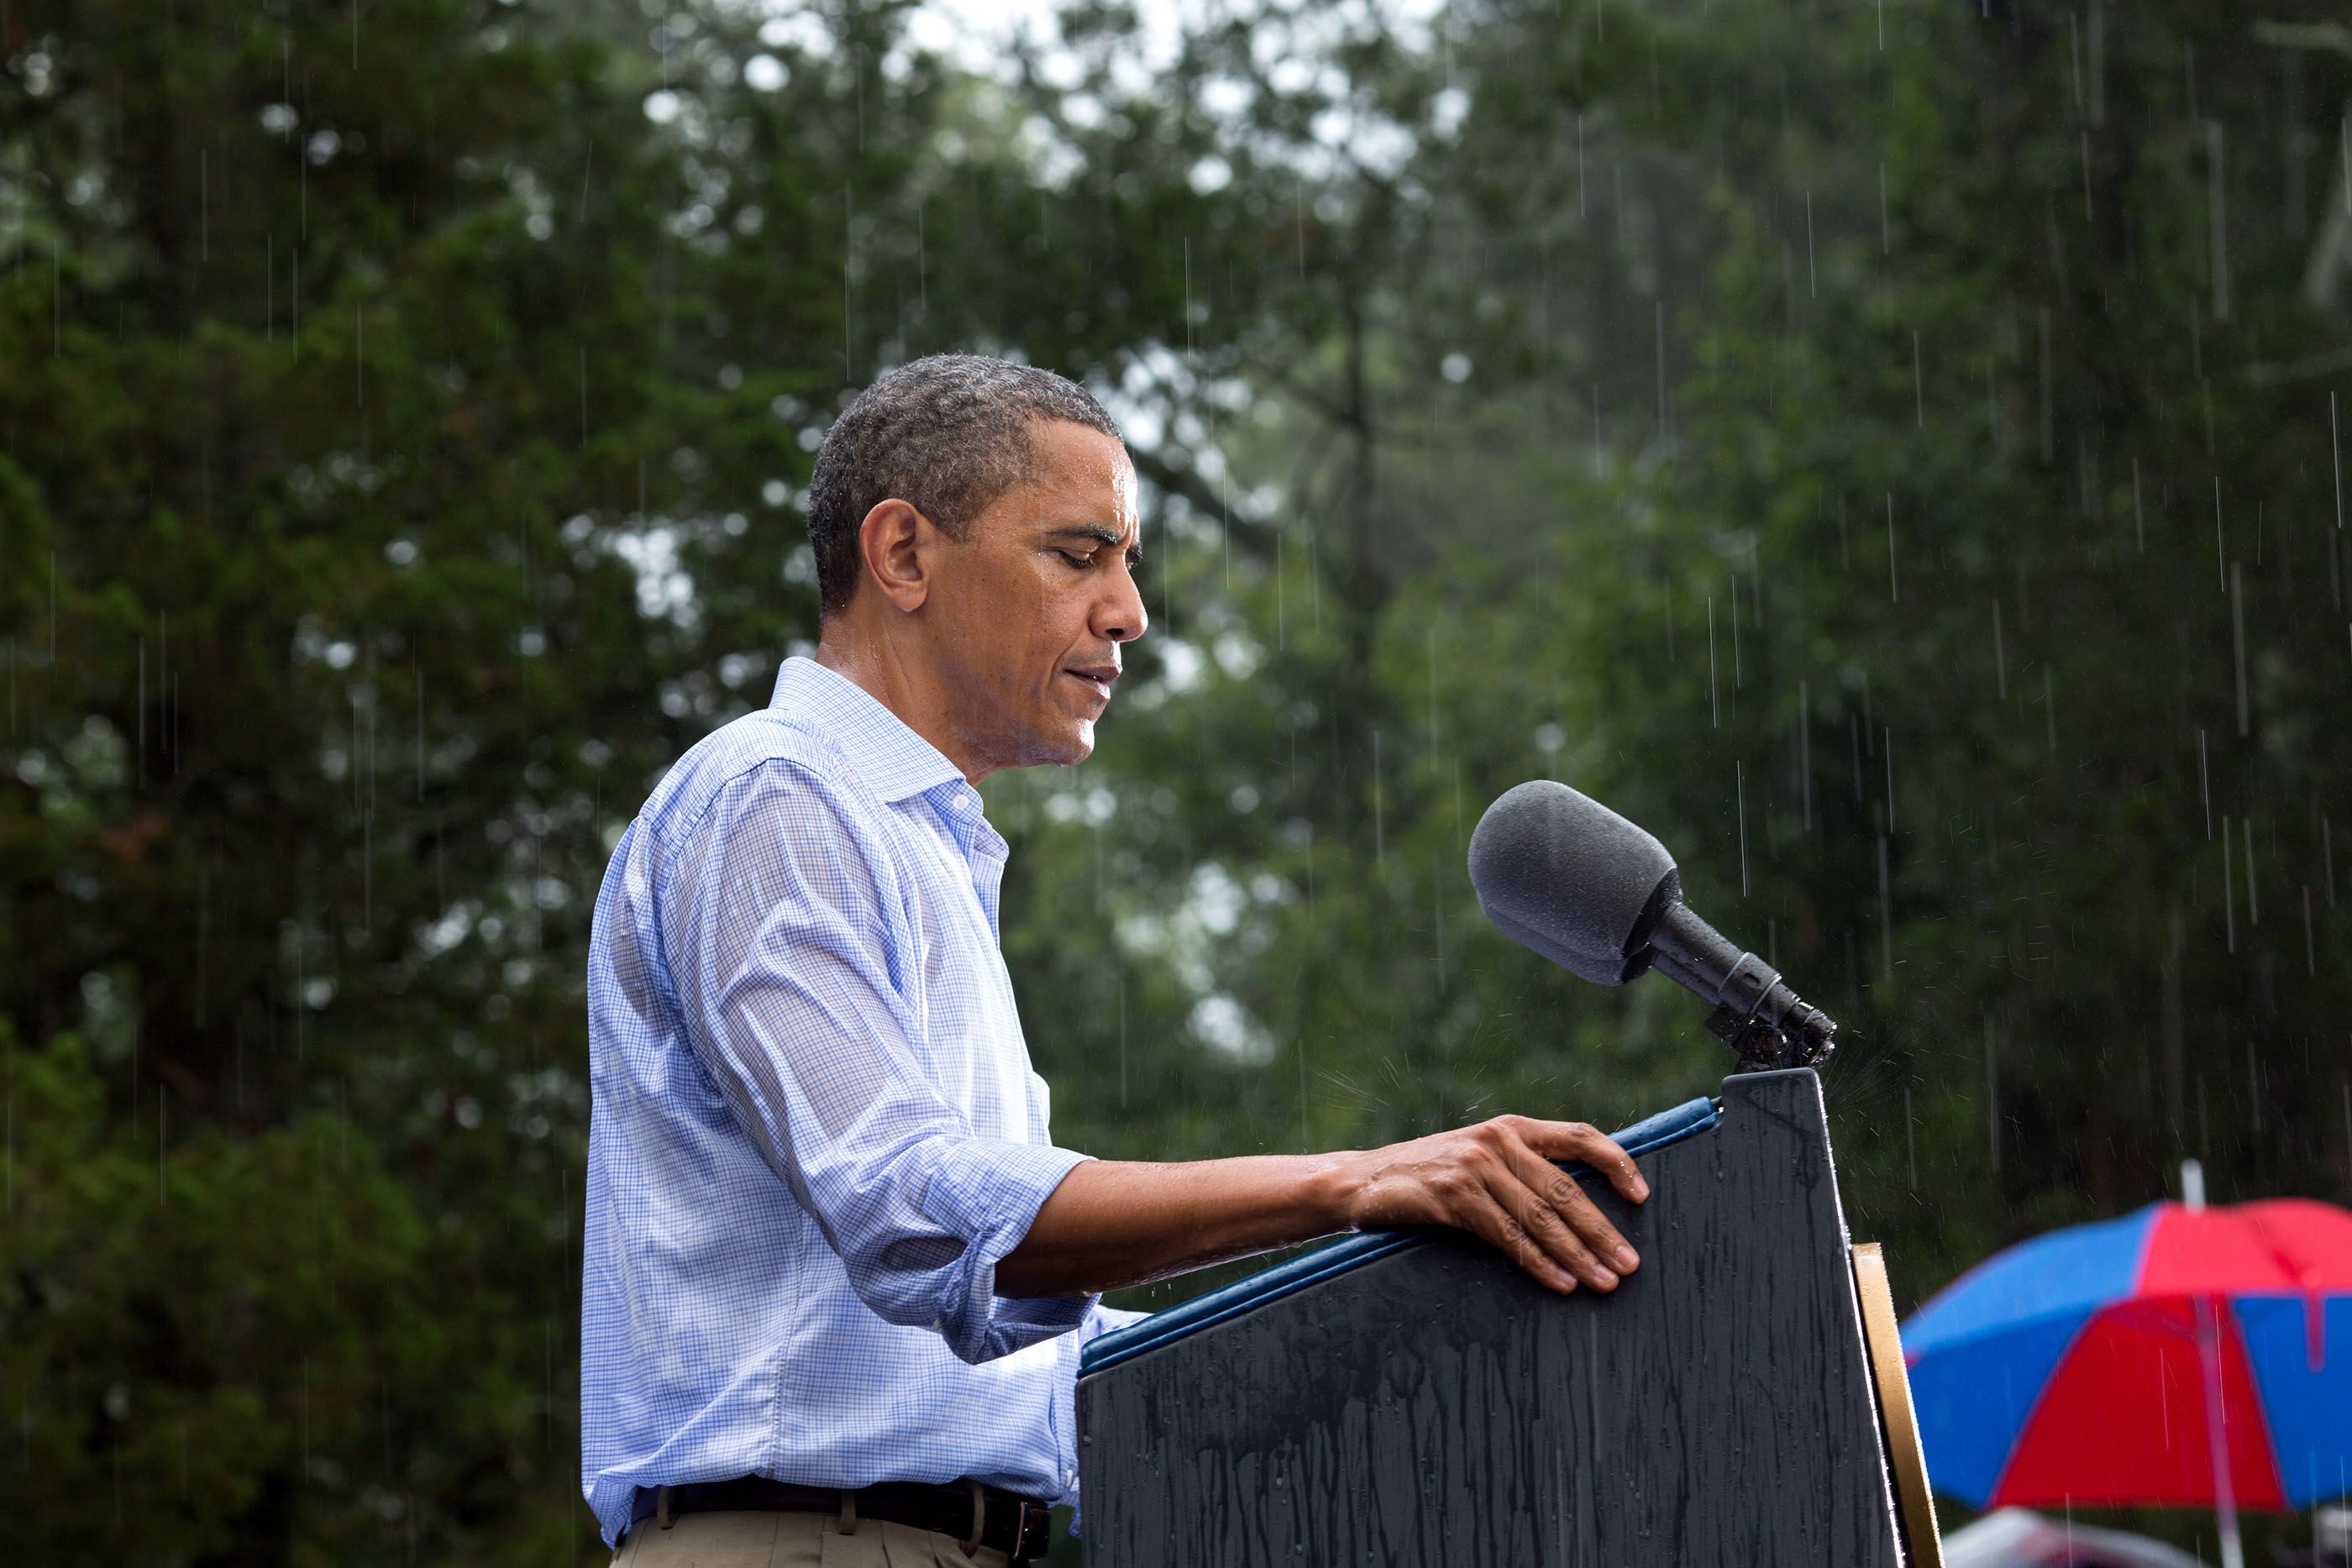 Virginia, July 14, 2012. Speaking during a rainstorm in Glen Allen. (Official White House Photo by Pete Souza)